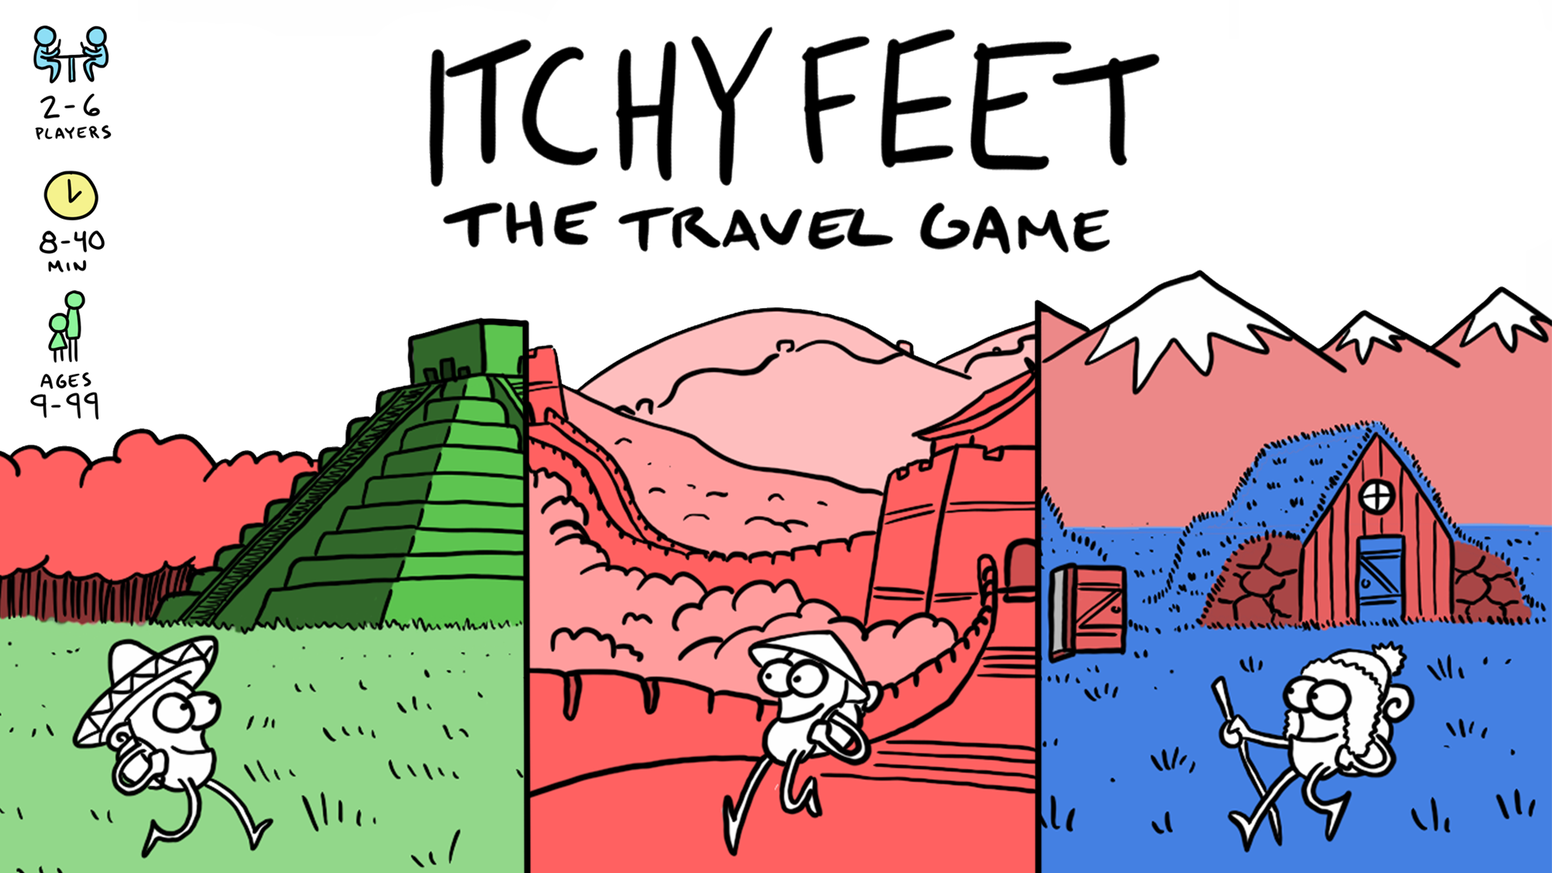 The simple, humorous and social travel-themed card game that is also a card game made for travelers!